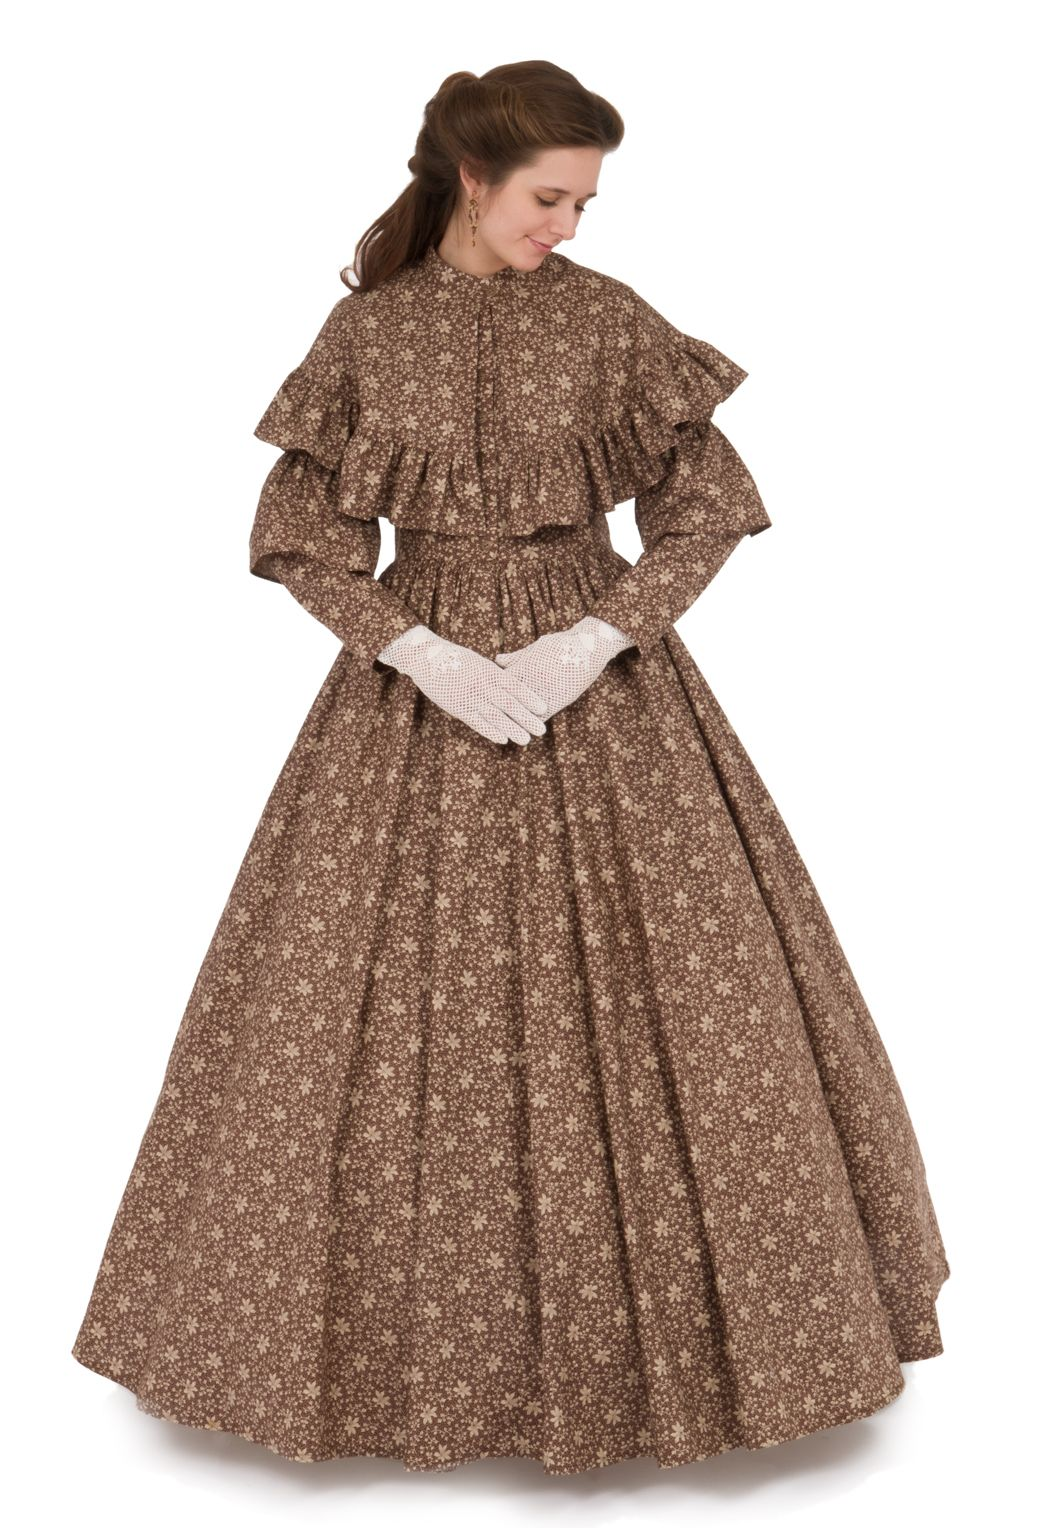 Trinity Ensemble | Period Clothing and Accessories | Pinterest ...